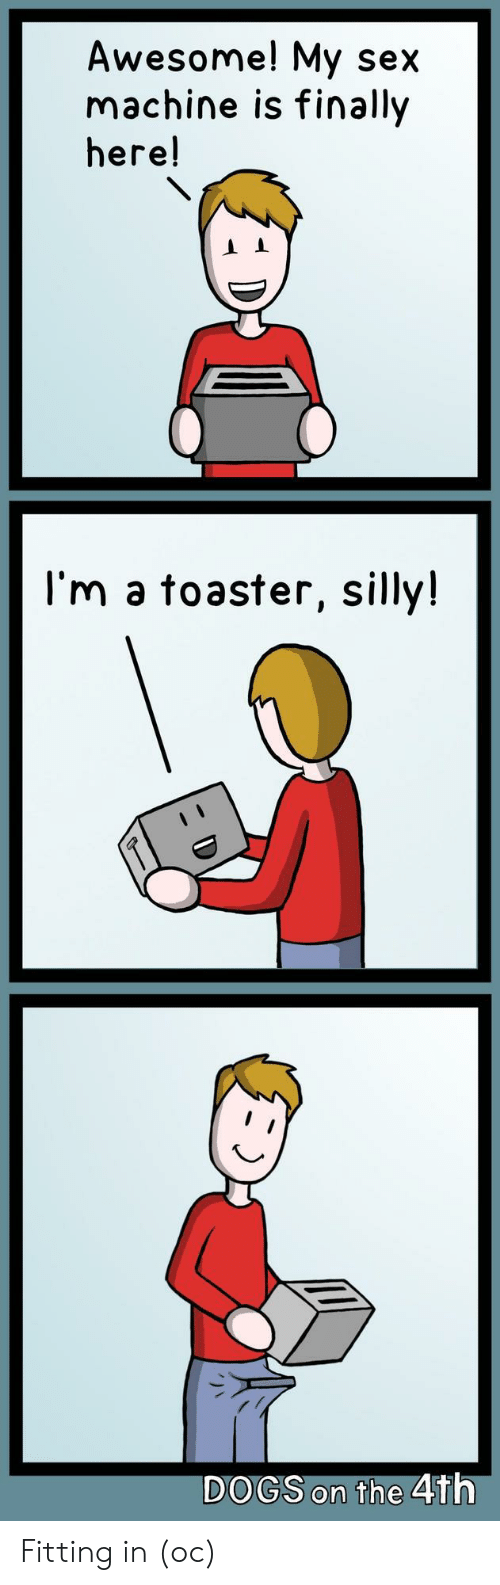 fitting: Awesome! My sex  machine is finally  here!  I'm a toaster, silly!  DOGS on the 4th Fitting in (oc)